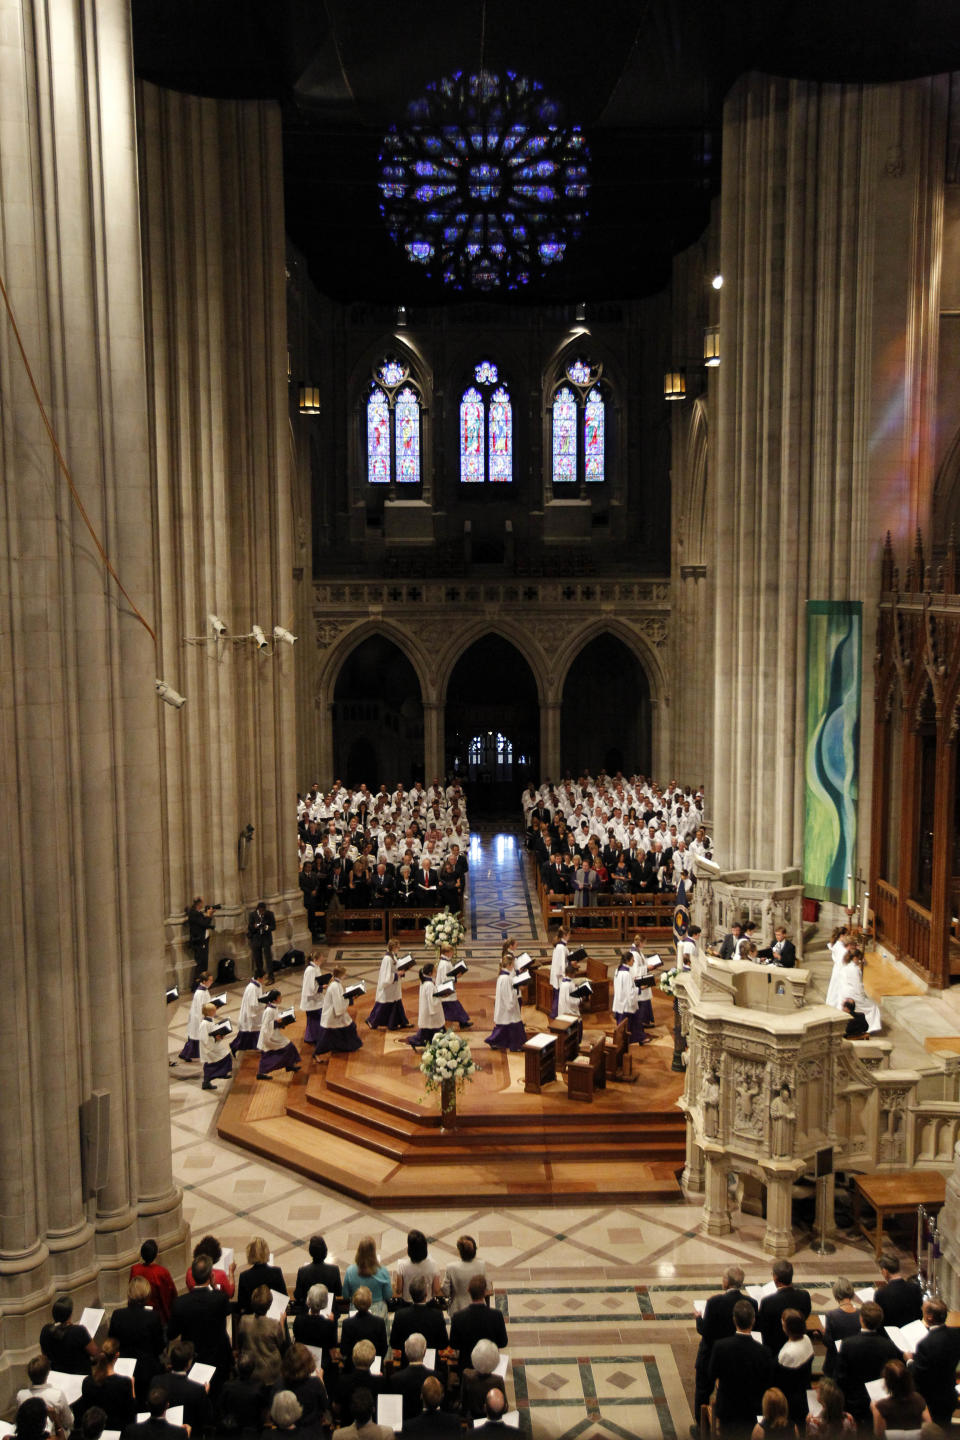 Members of the choir enter during the processional at the Washington National Cathedral in Washington, Thursday, Sept. 13, 2012, for  the national memorial service for the first man to walk on the moon, Neil Armstrong. (AP Photo/Ann Heisenfelt)